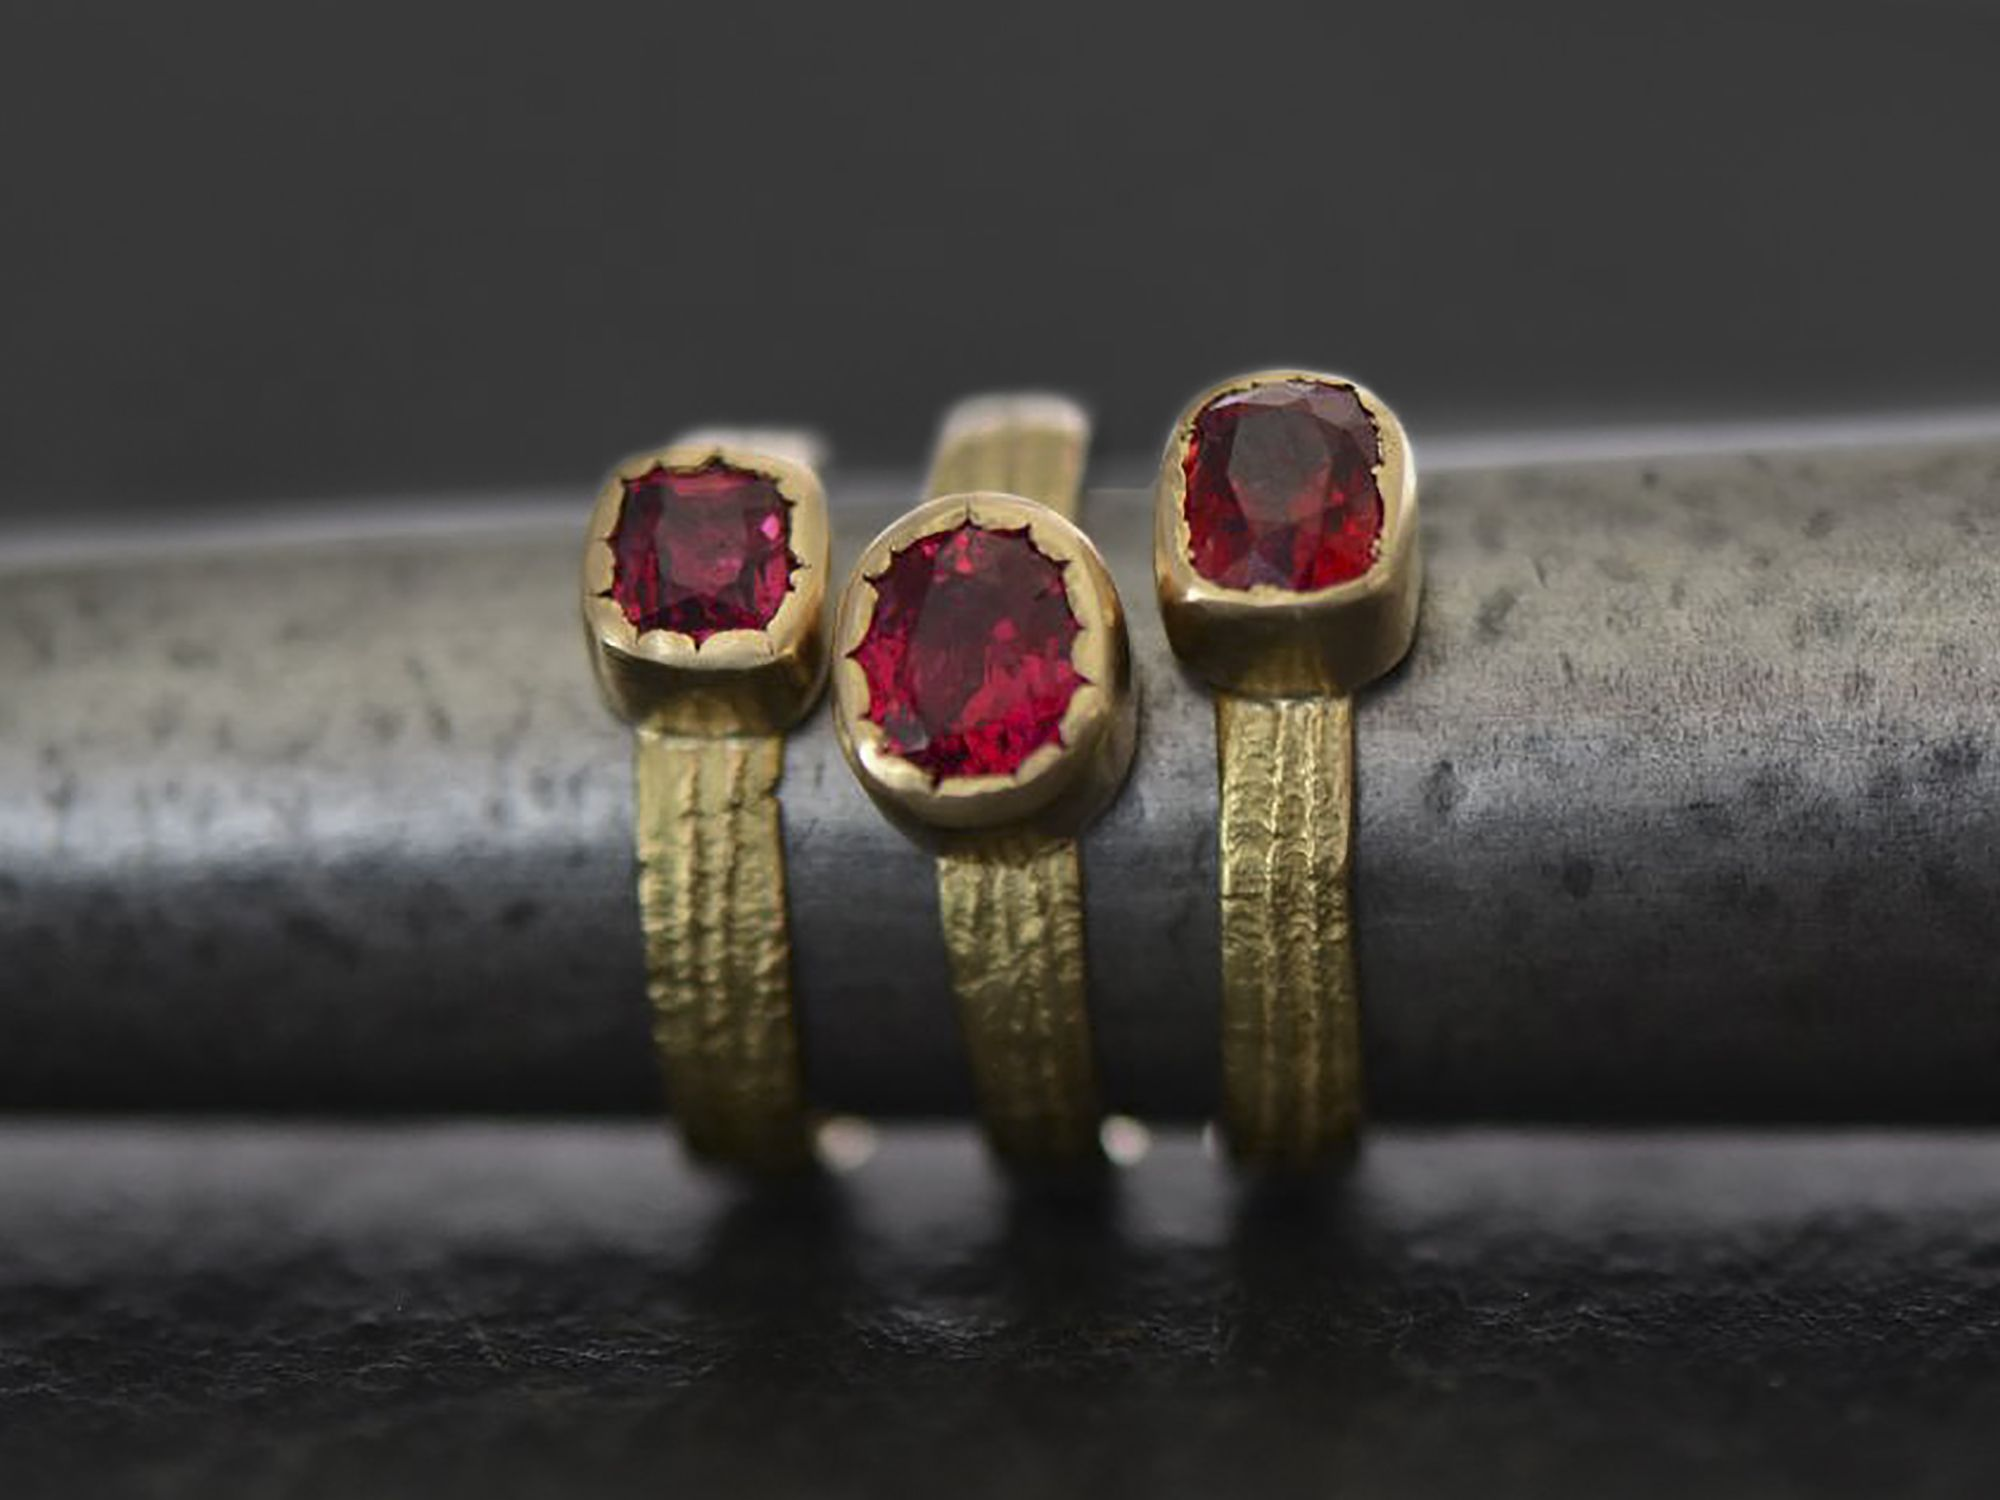 Ana Sitia large spinel ring by Emmanuelle Zysman